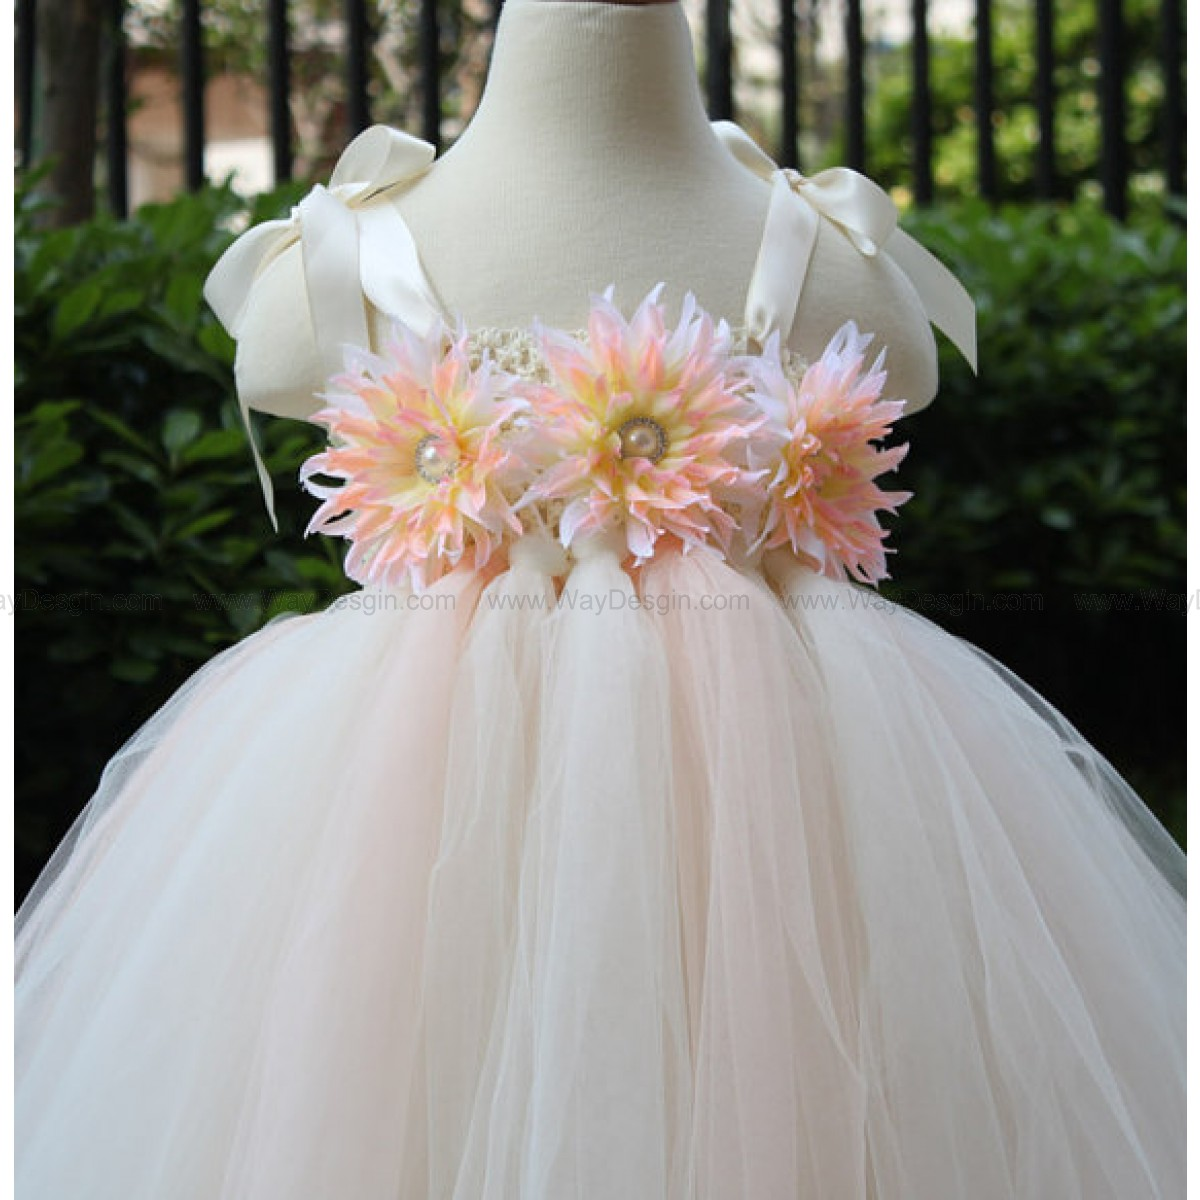 Flower Girl Dress Blush peach Ivory tutu dress baby dress toddler birthday dress wedding dress